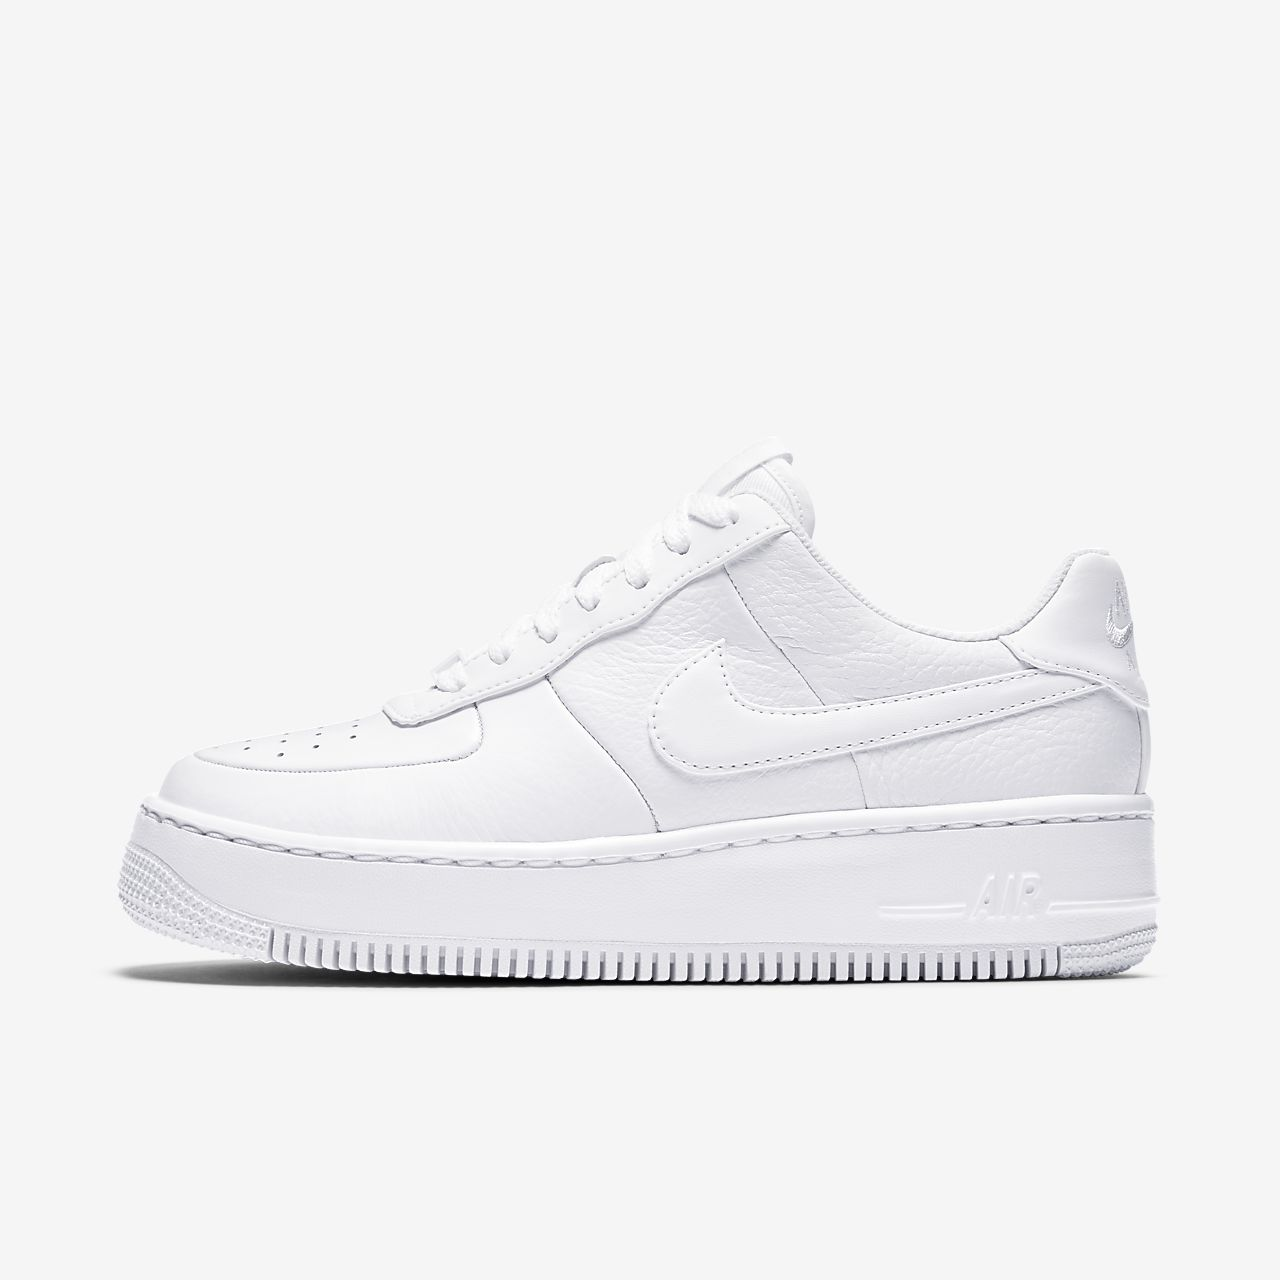 Force Femme Upstep Air Chaussure Nike 1 Pour dChQtrxs